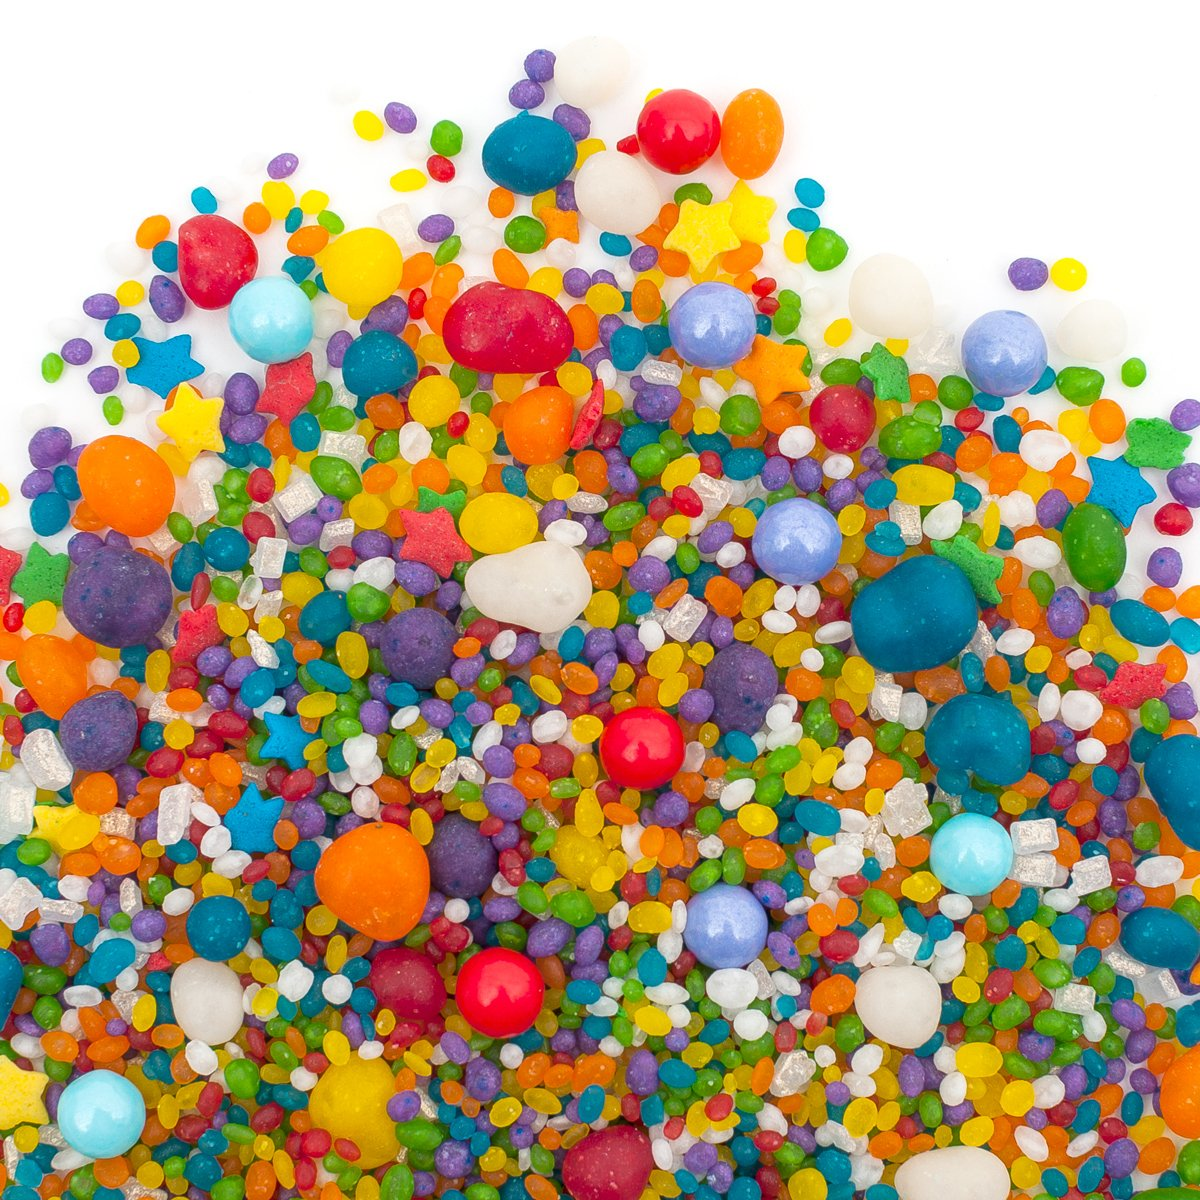 Candy Sprinkles | Rainbow Carnivale Candyfetti | 8oz Jar | Fruit Flavored | MADE IN THE USA! | Edible Confetti